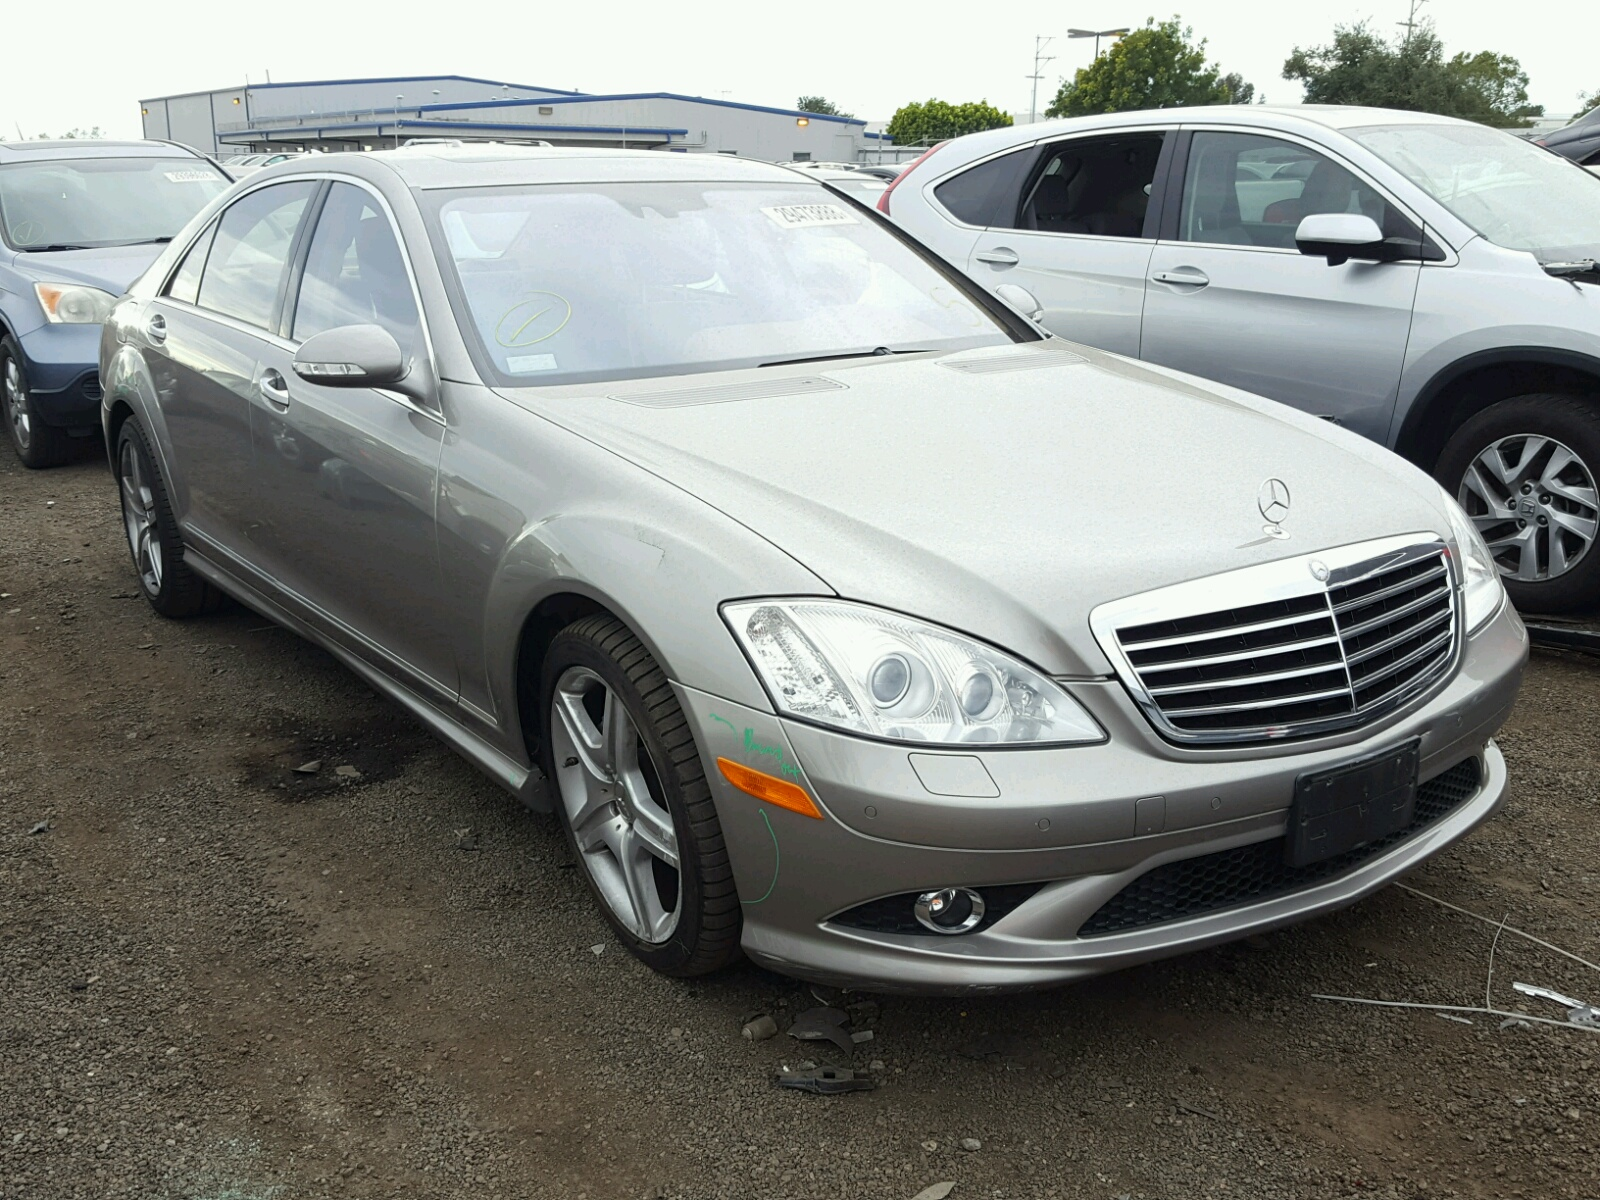 Auto auction ended on vin 55swf8hb9hu200271 2017 mercedes for Mercedes benz sacramento ca